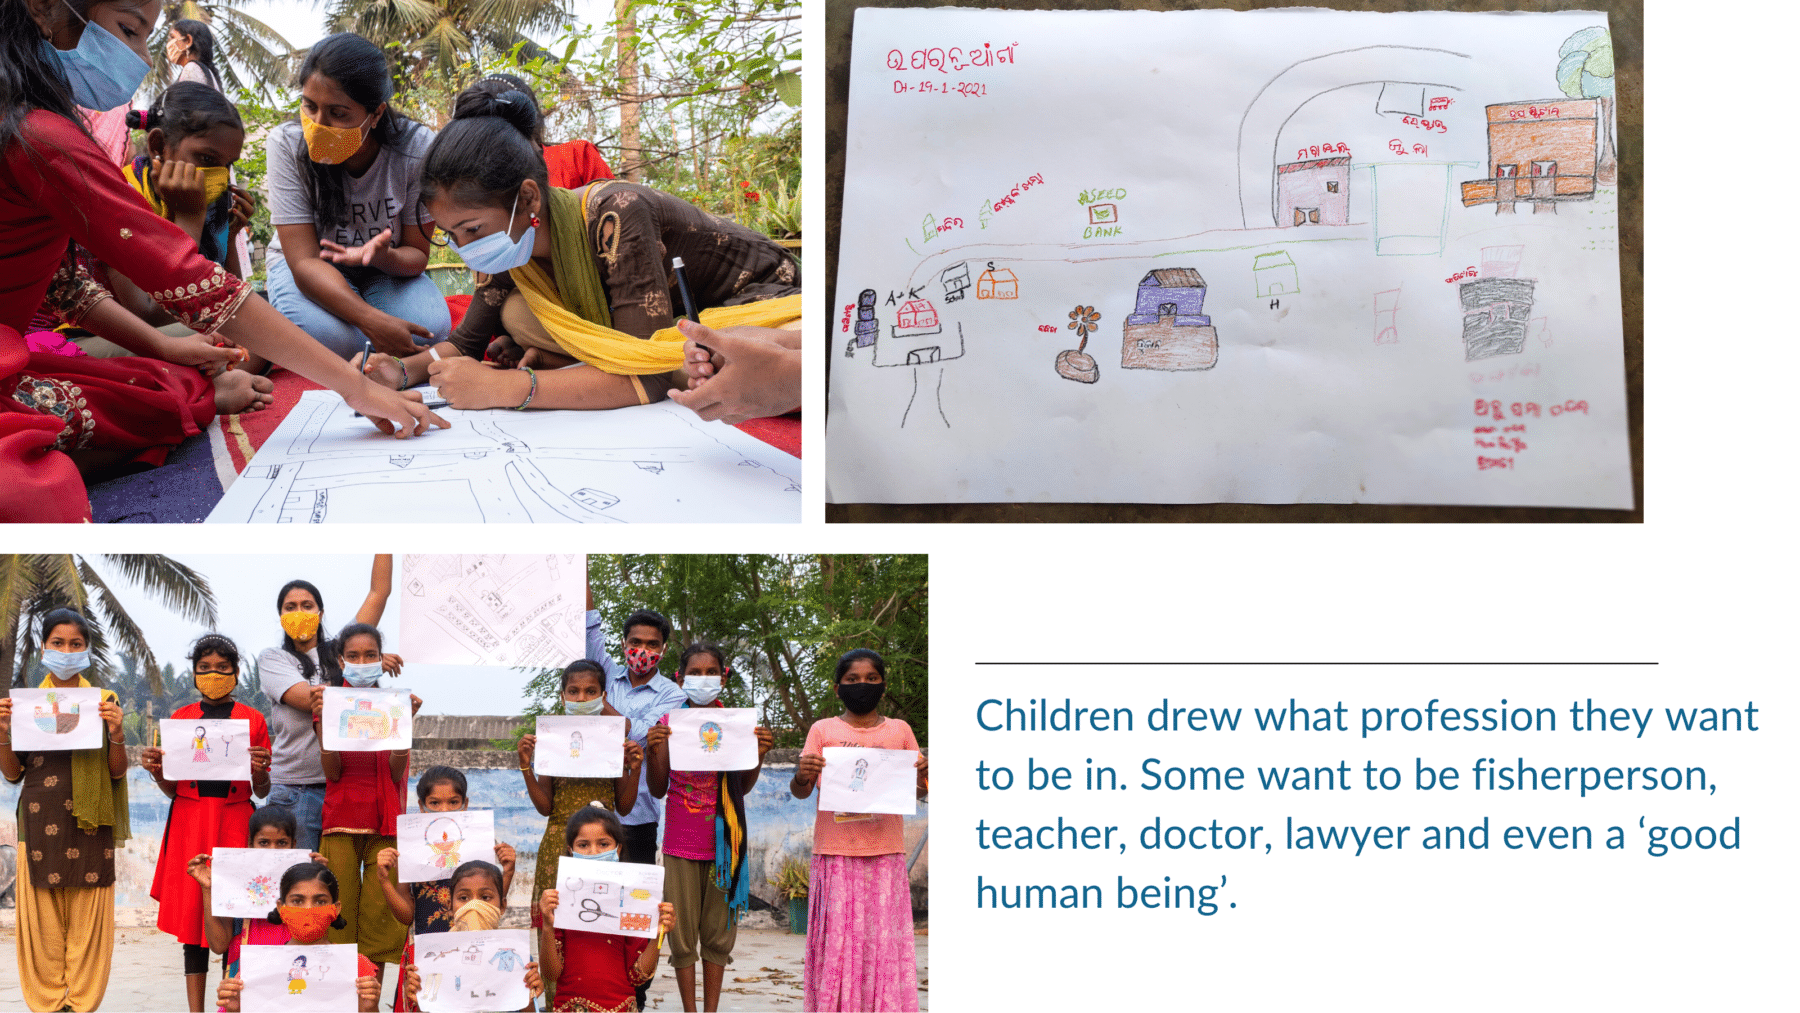 Children drew what profession they want to be in. Some want to be fisherperson, teacher, doctor, lawyer, and even a good human being.